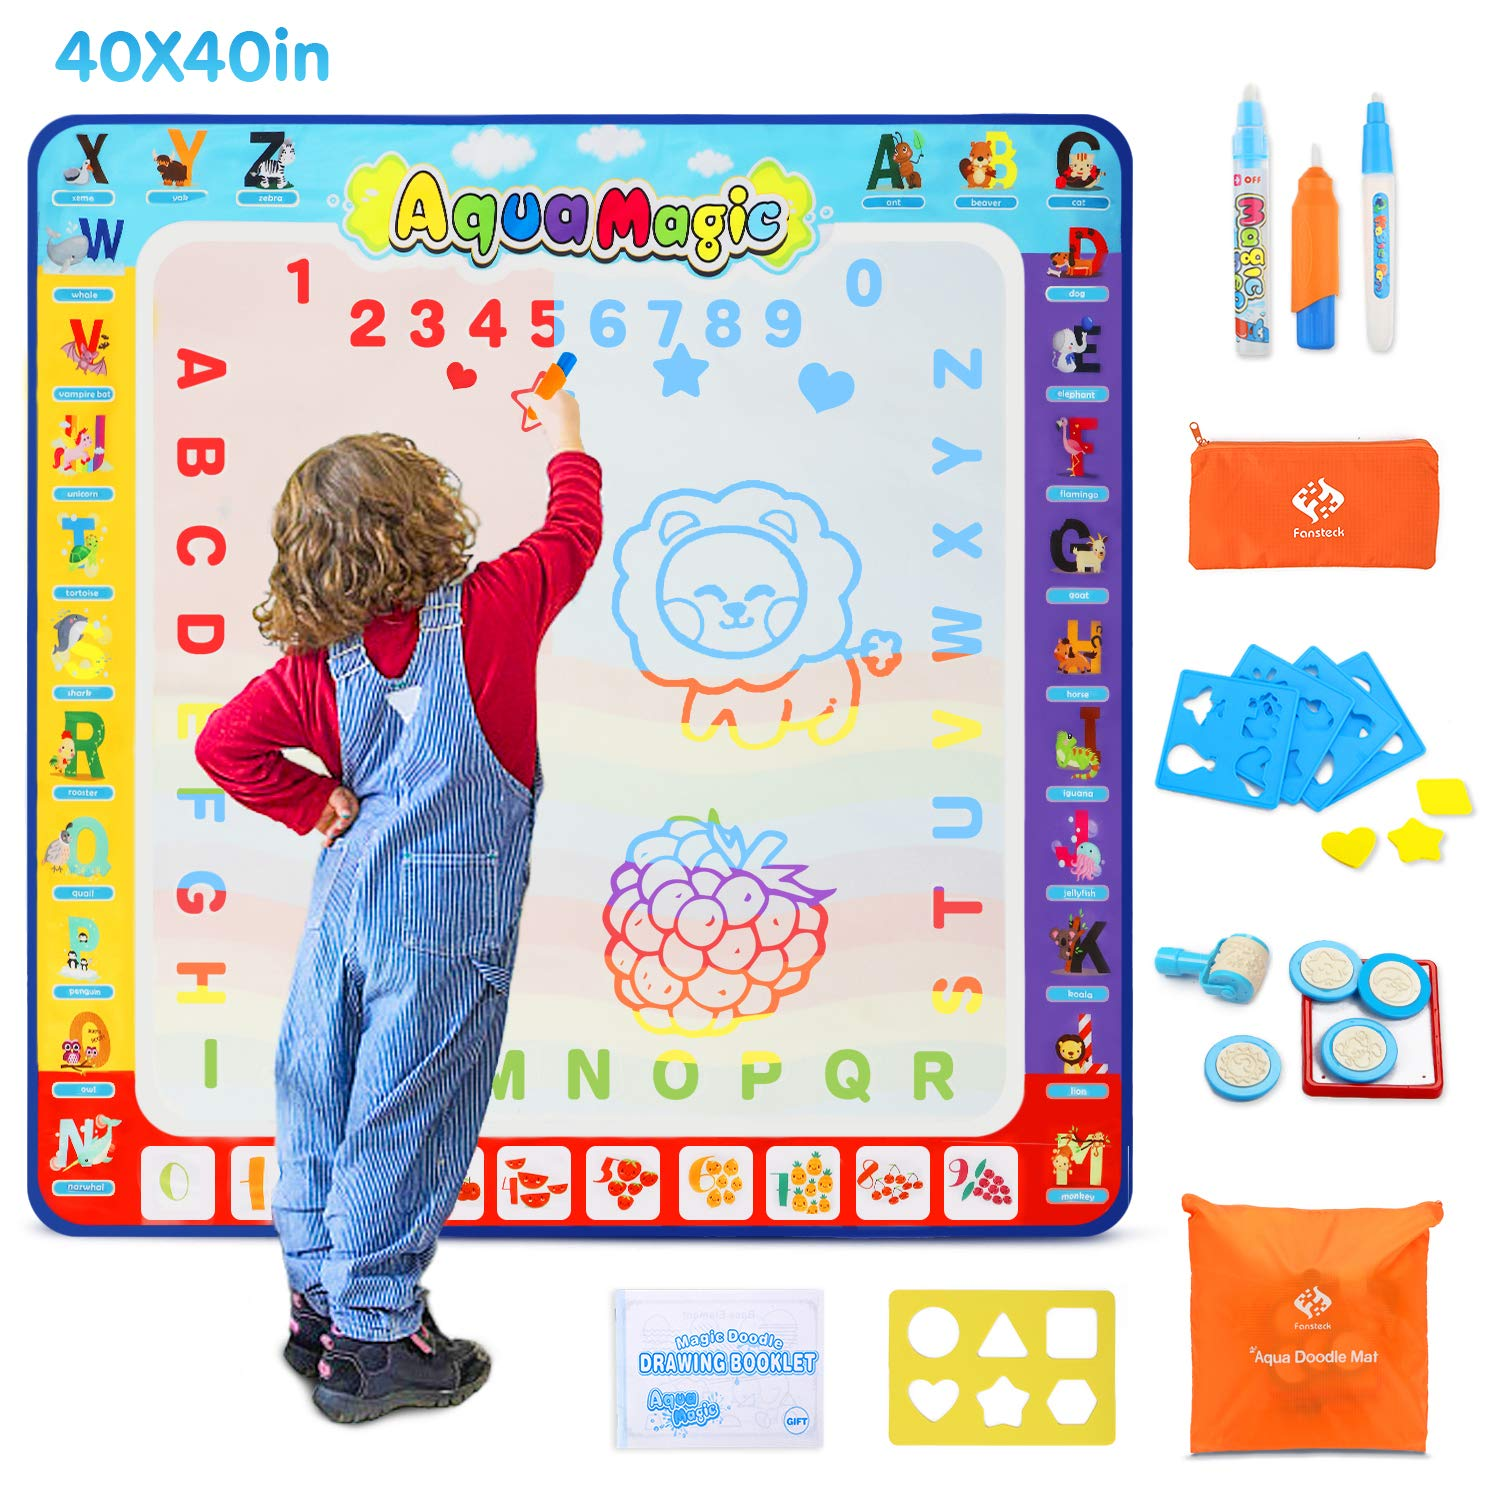 Fansteck Water Doodle Mat, Large Water Drawing Mat 40X40 inch, No Mess Aqua Magic Doodle Mat with 24 Accessories, Colorful Educational Toy and Ideal Gift for Toddlers, Boys, Girls Age of 2 3 4 5 6 7 8 by Fansteck